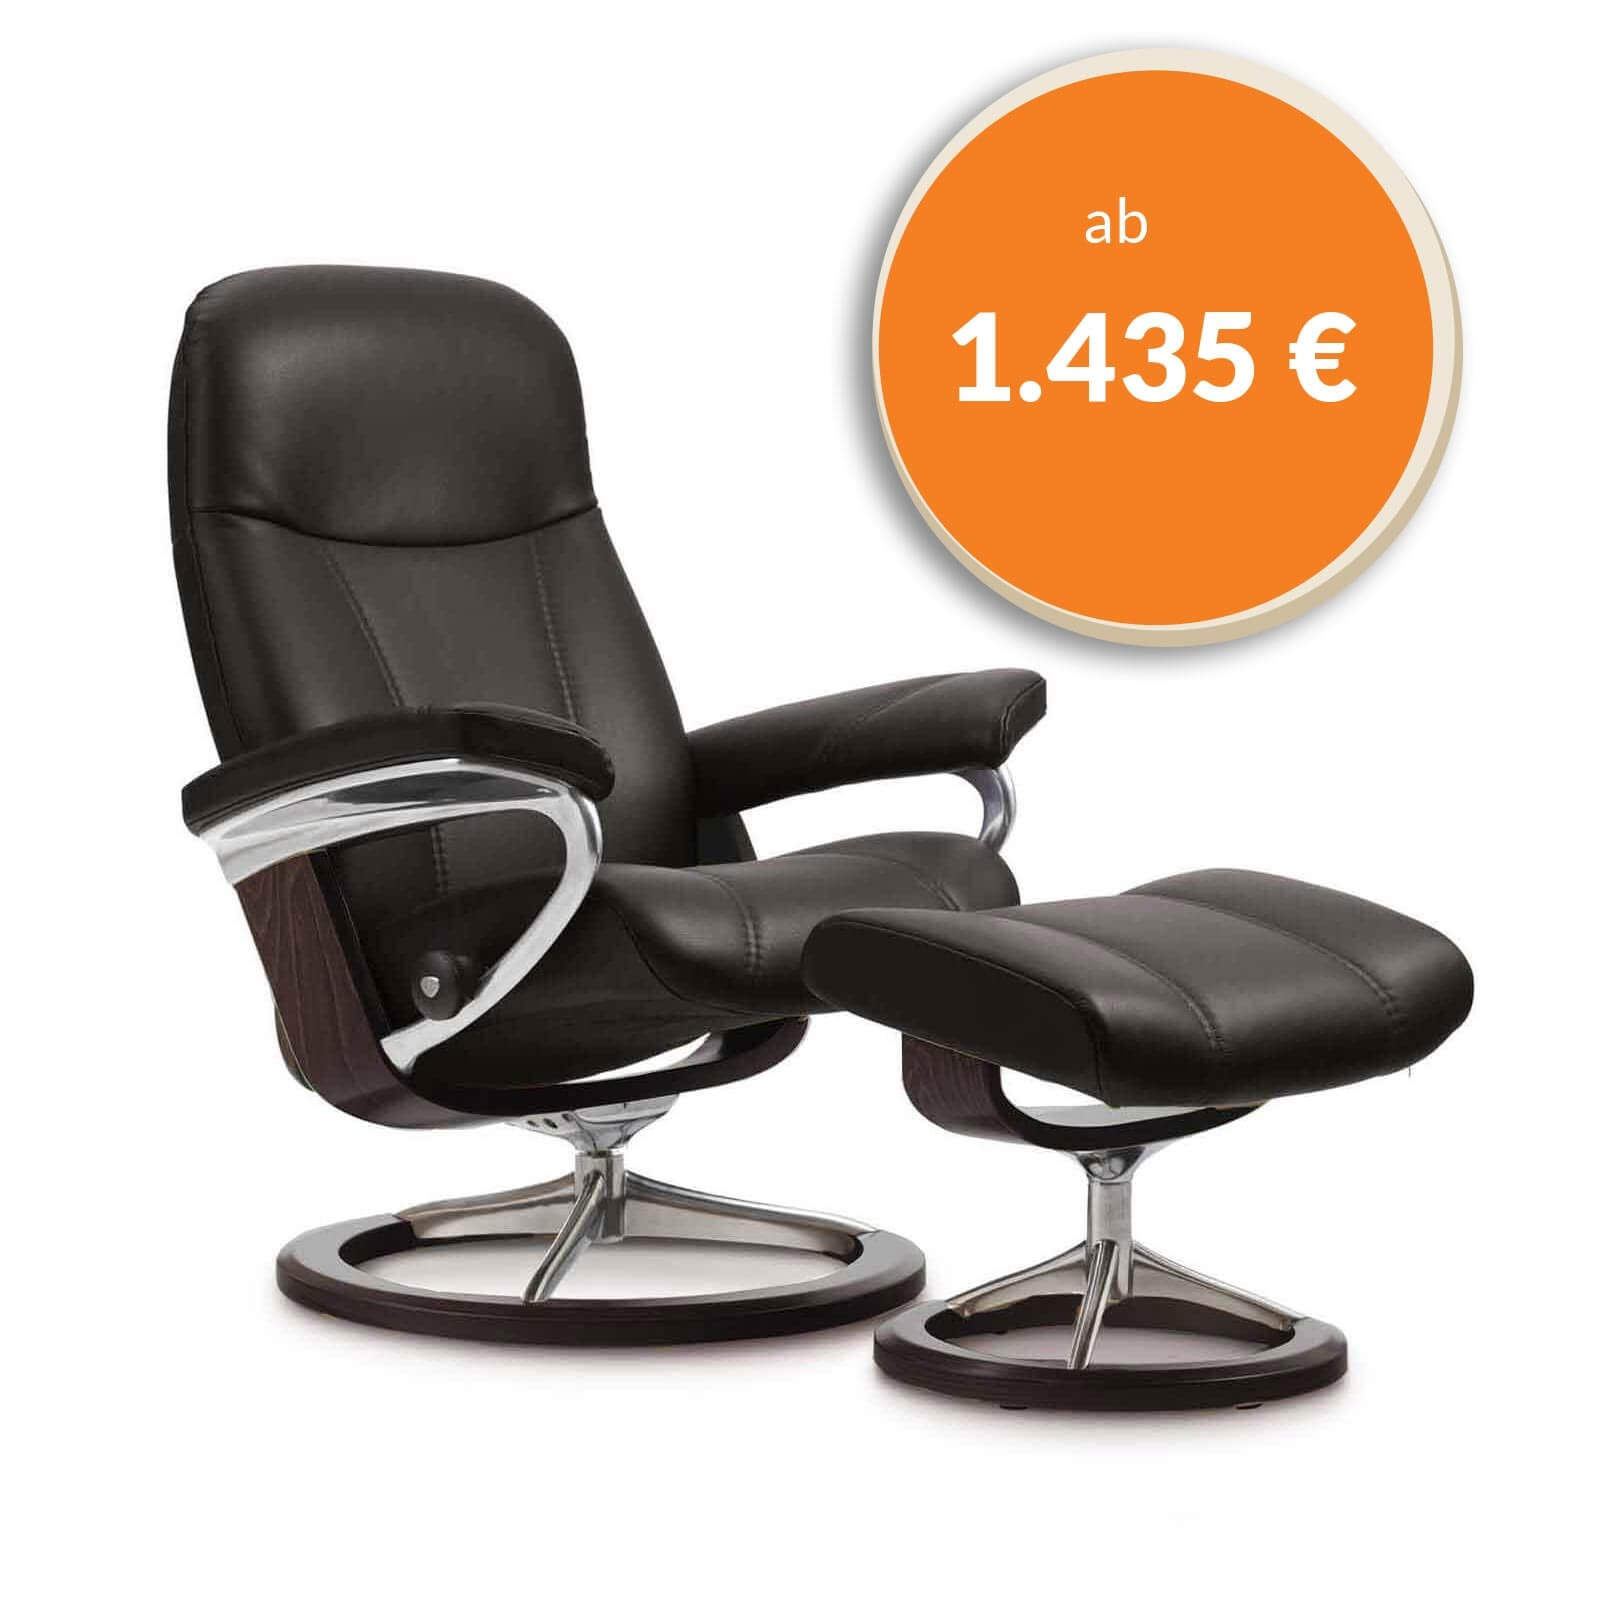 Stressless Consul Signature Sessel Stressless Angebote Relaxsessel Stressless Online Shop